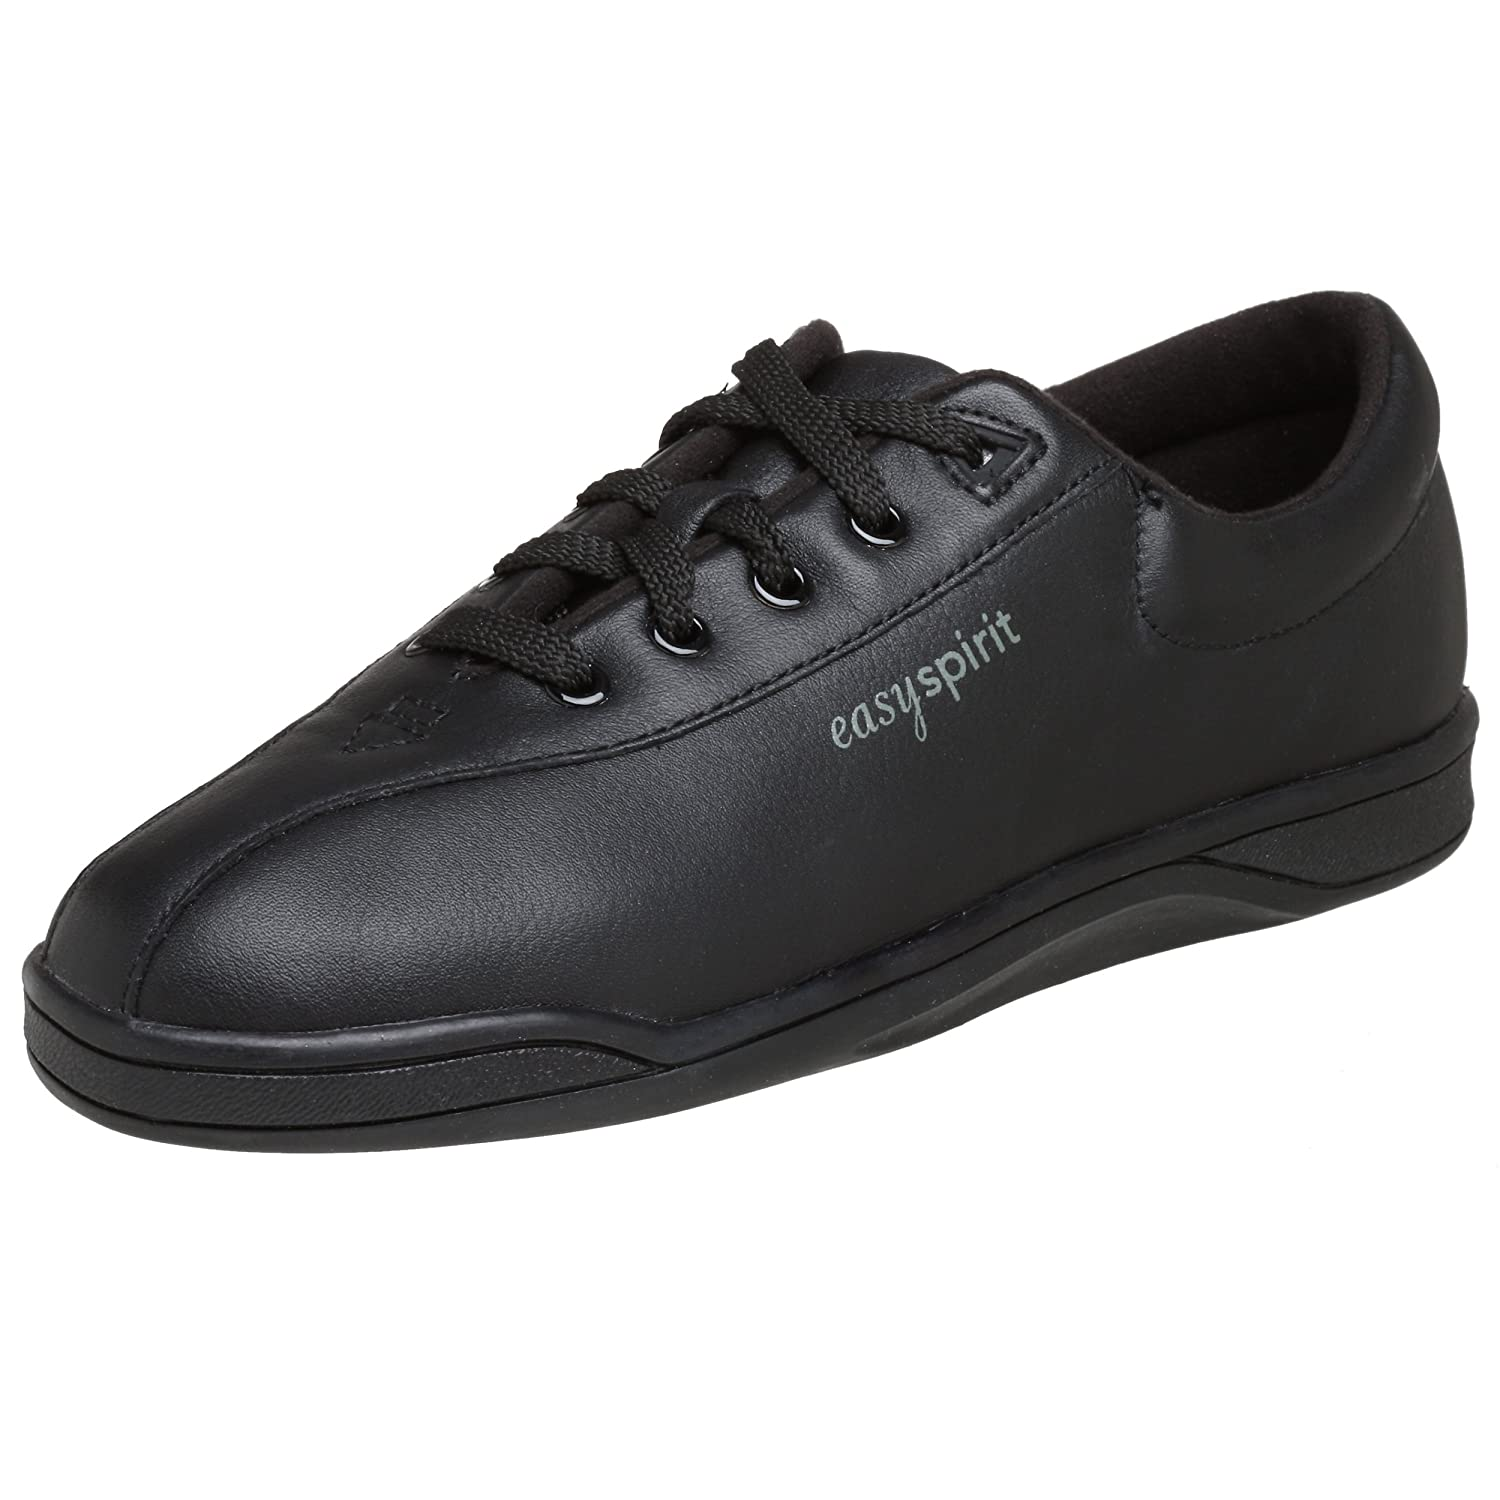 Easy Spirit AP1 Sport Walking Shoe B000F60E3W 12 B(M) US|Black Leather